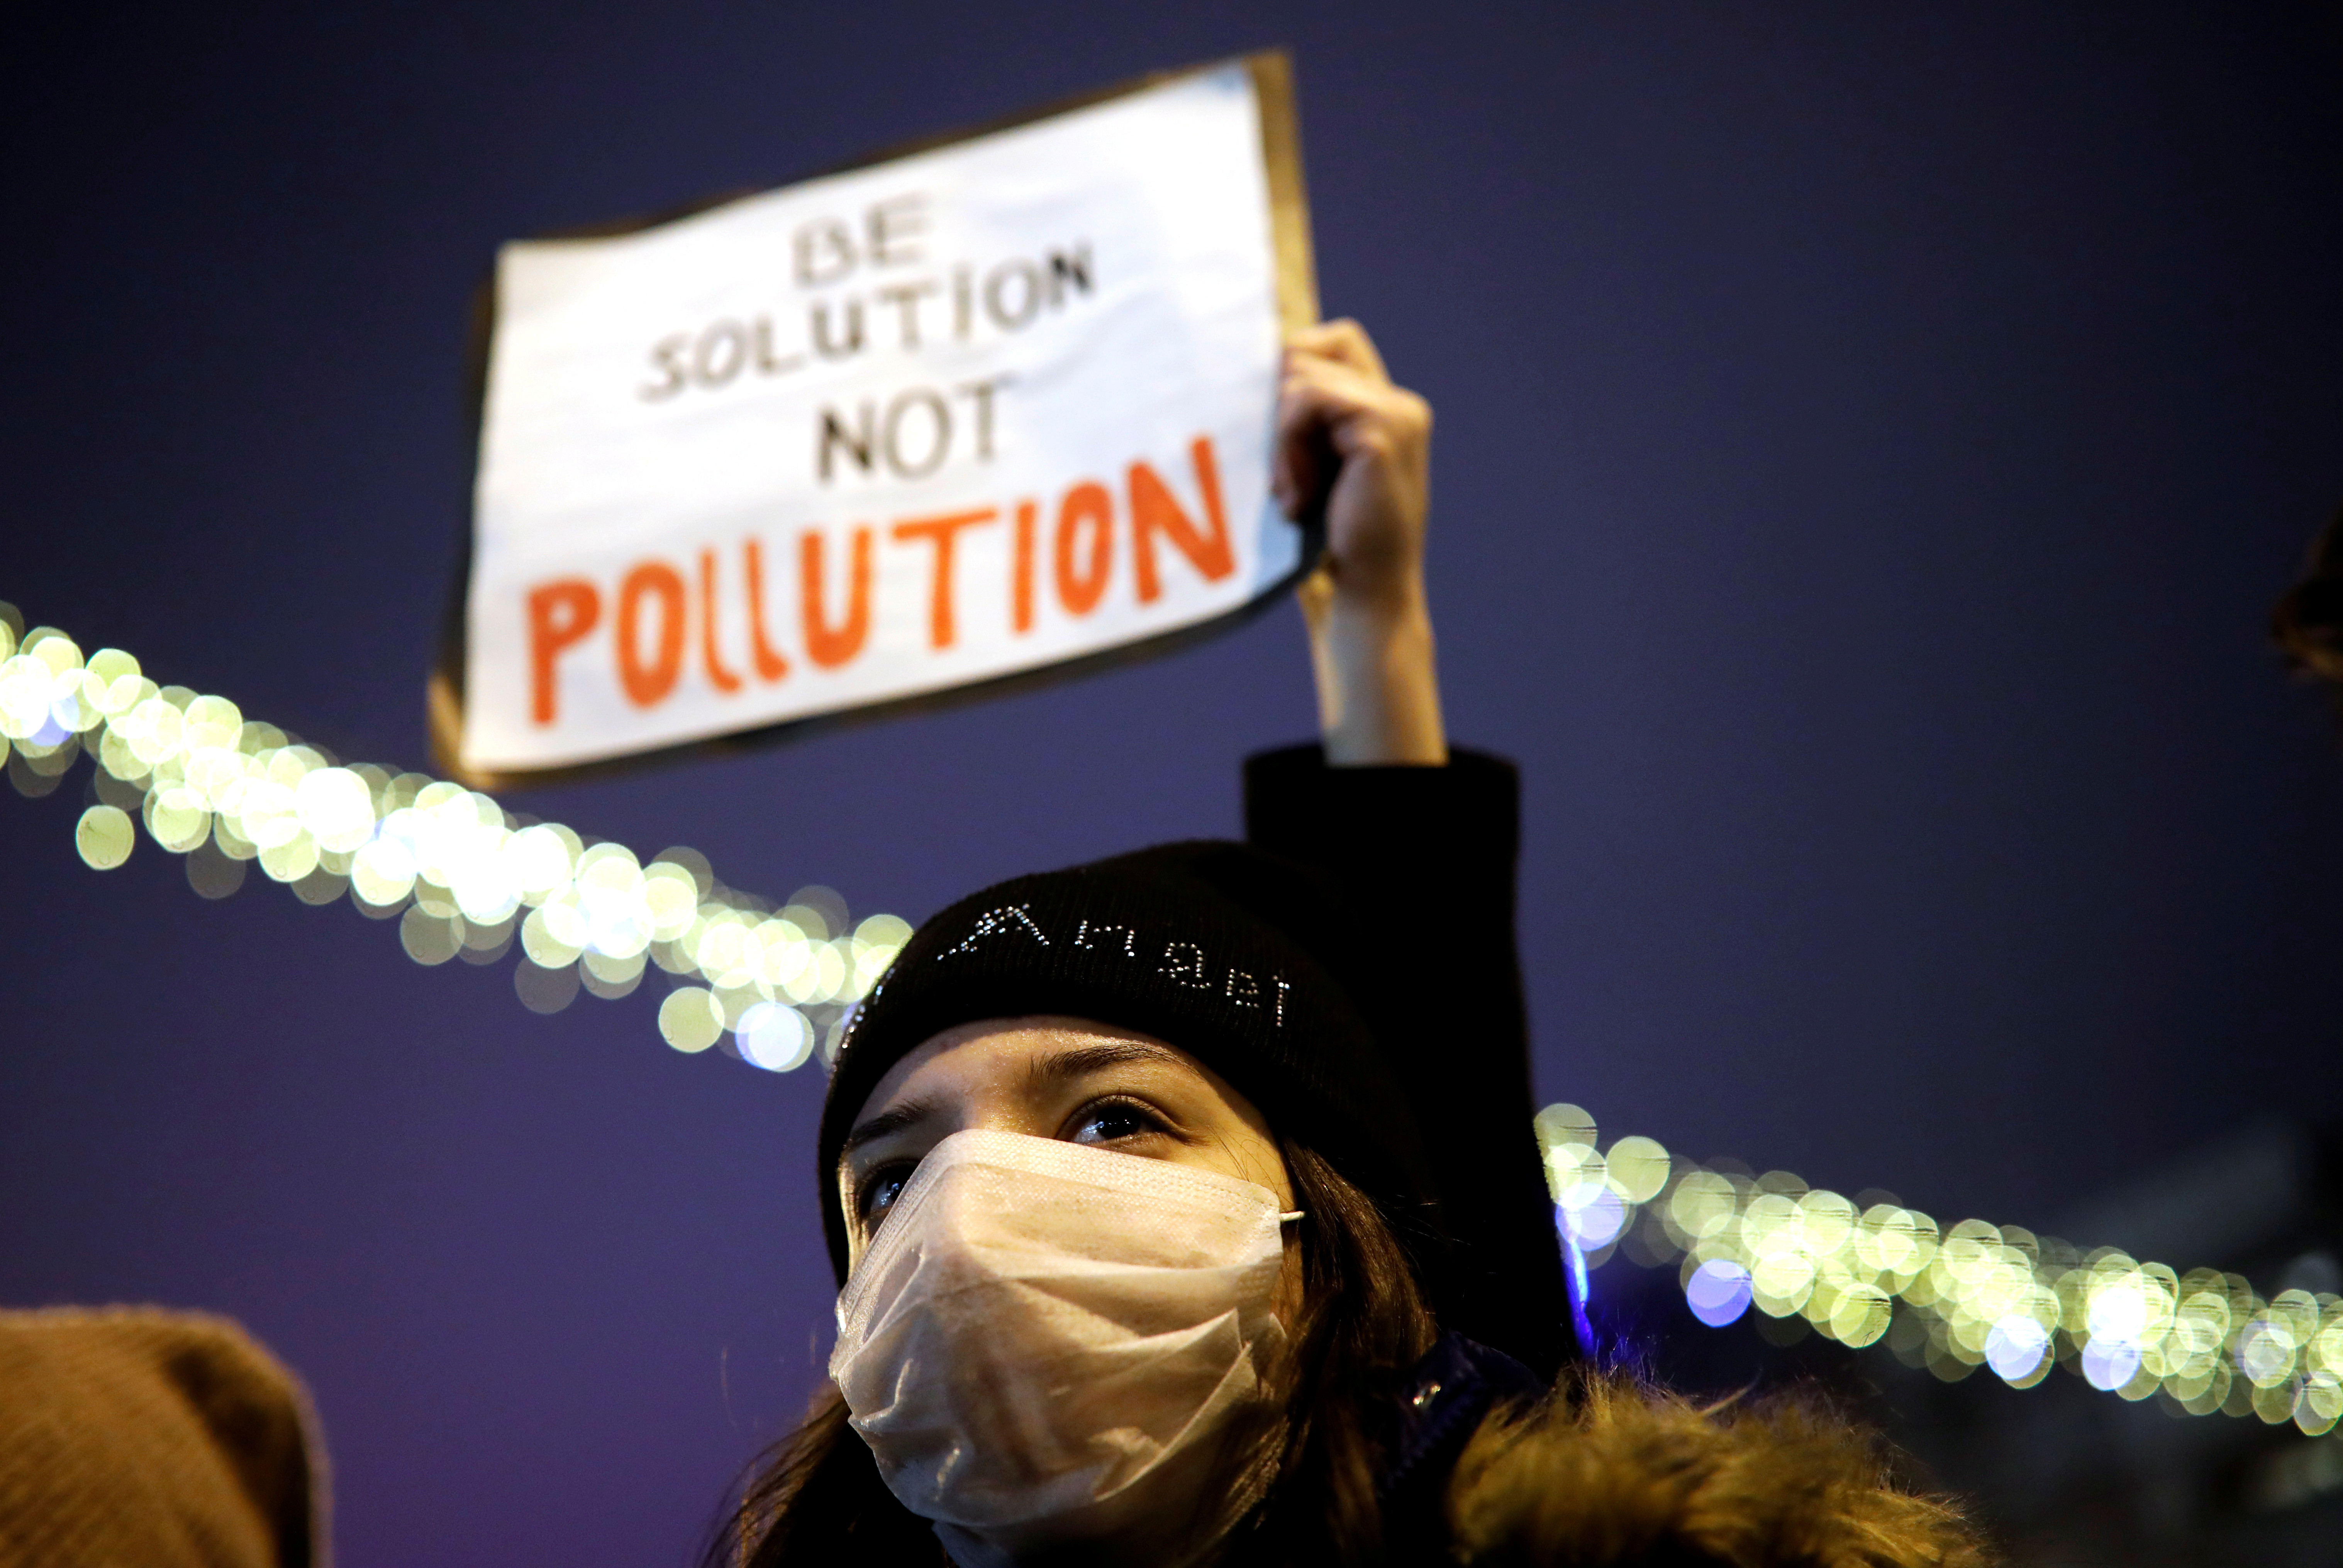 air-pollution-in-europe-image